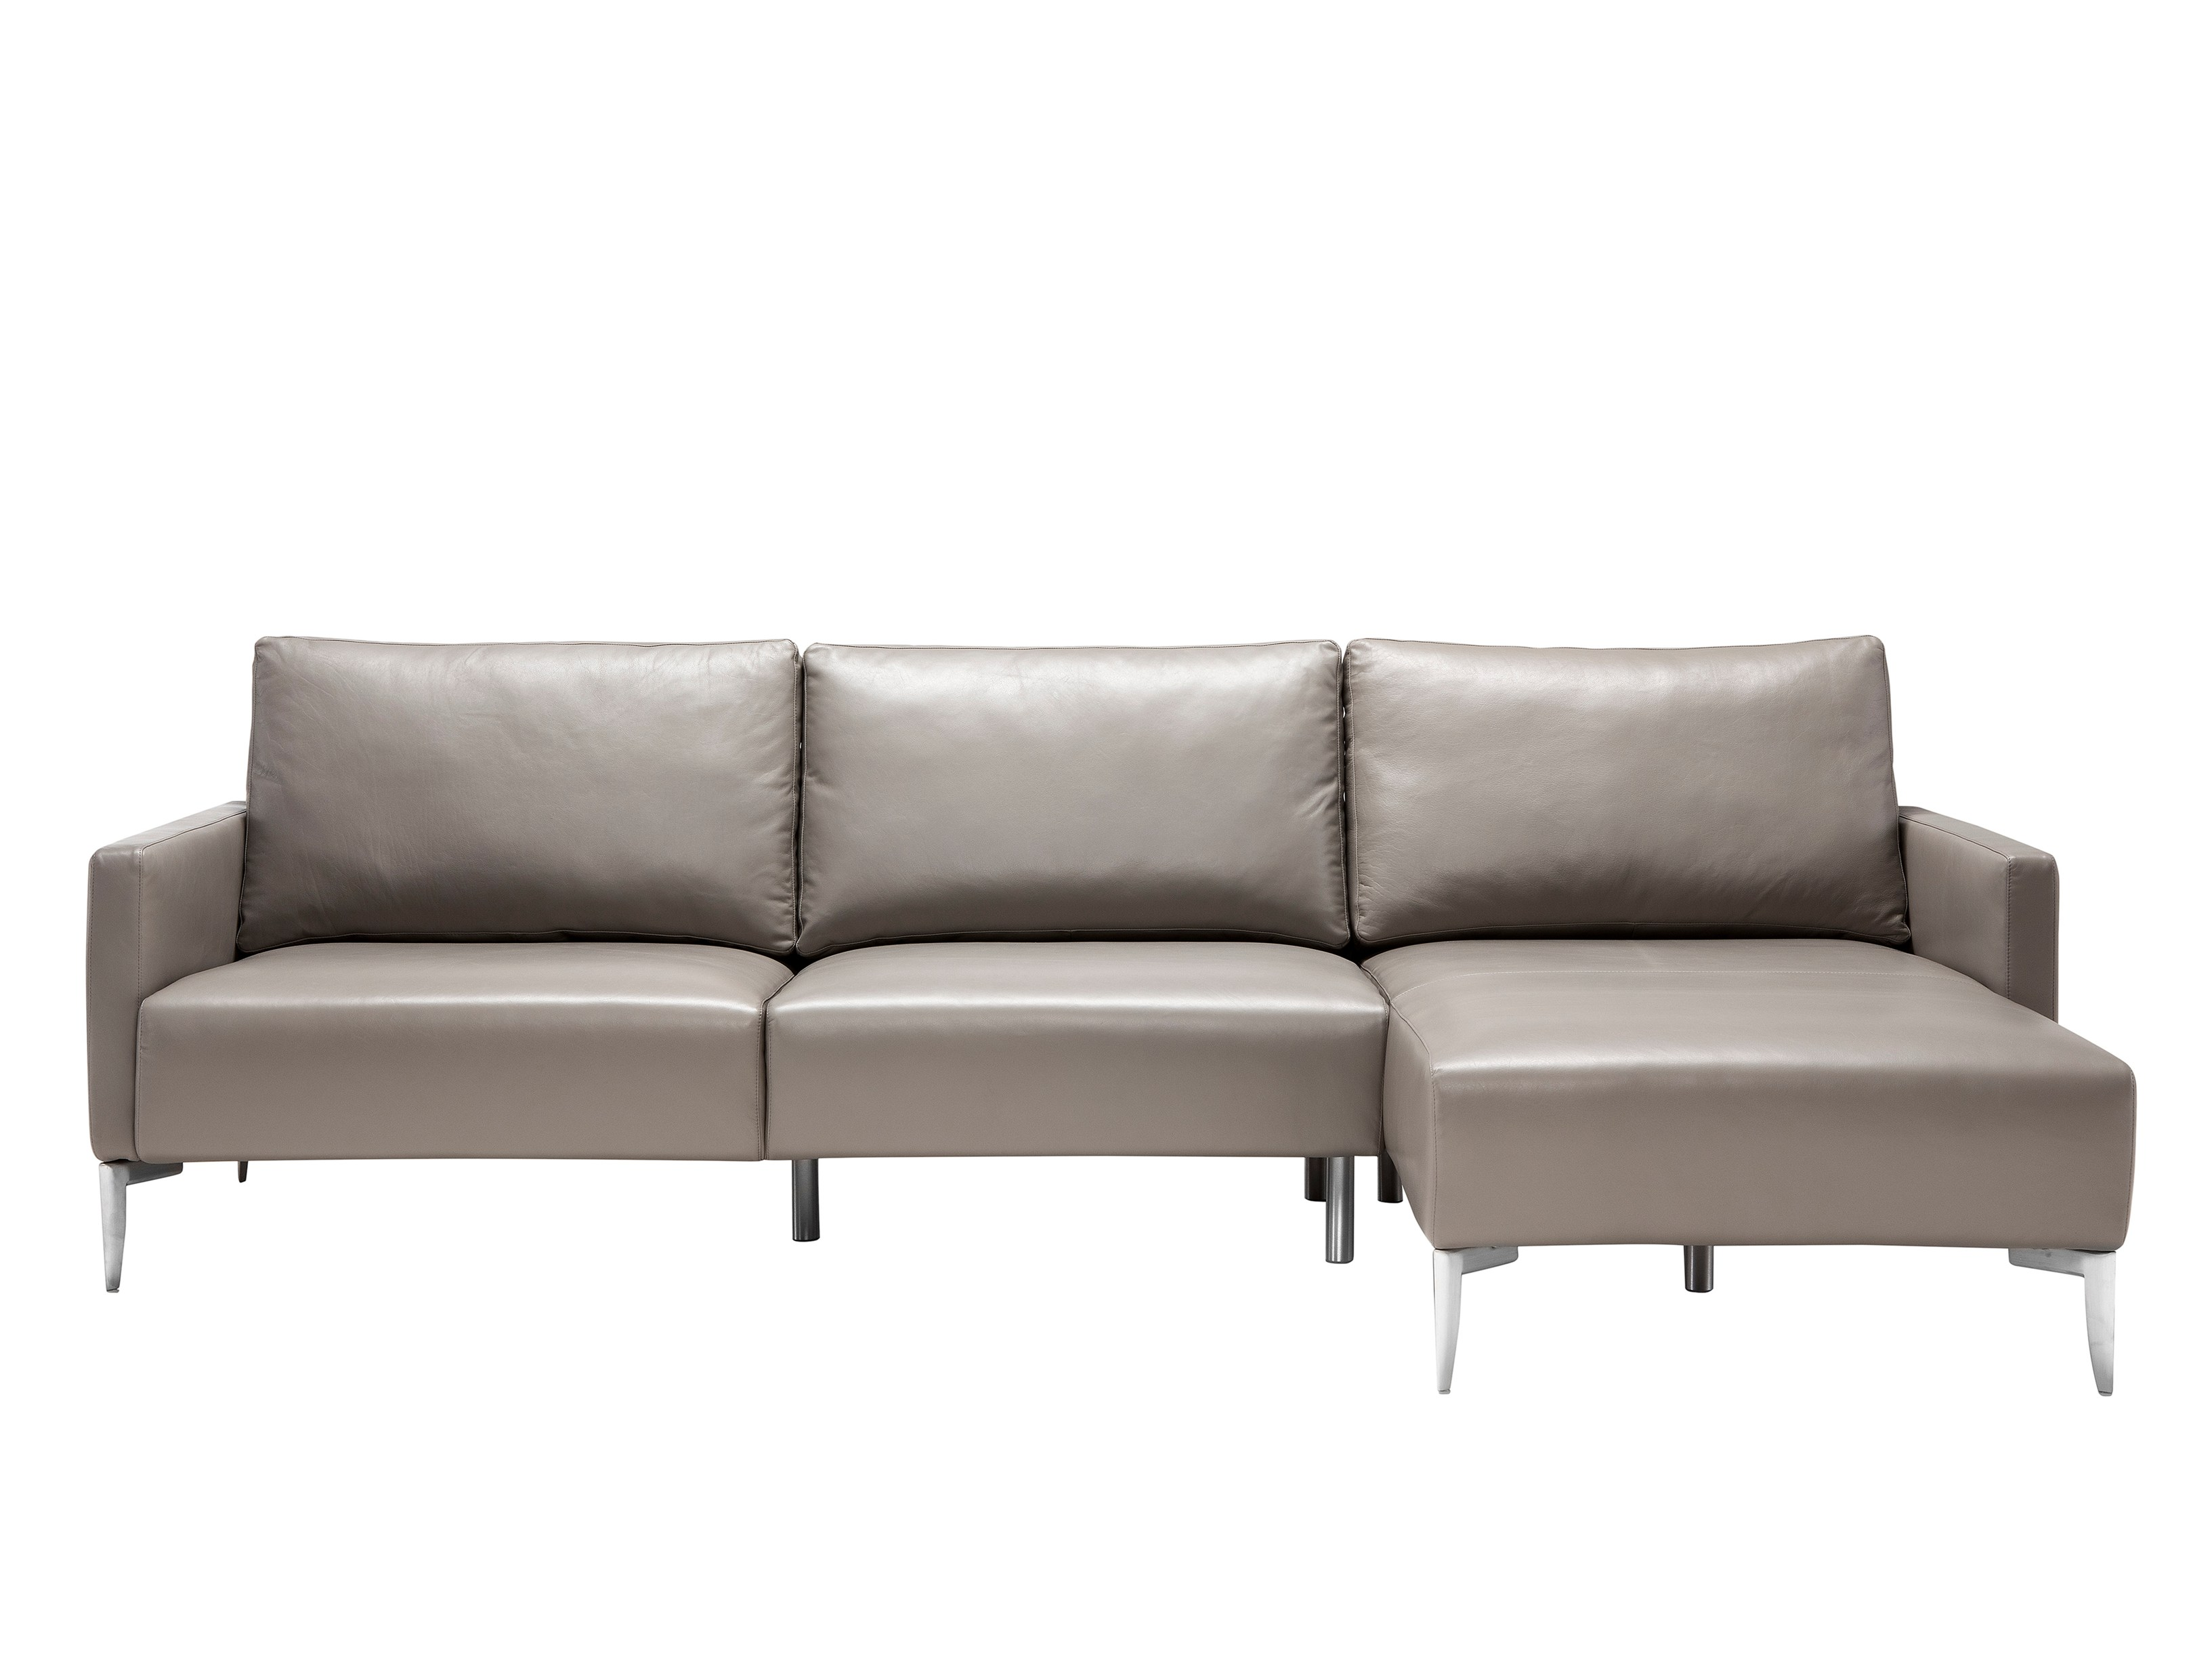 Sofa with chaise longue amalfi by amura design arco for Amalfi sofa chaise